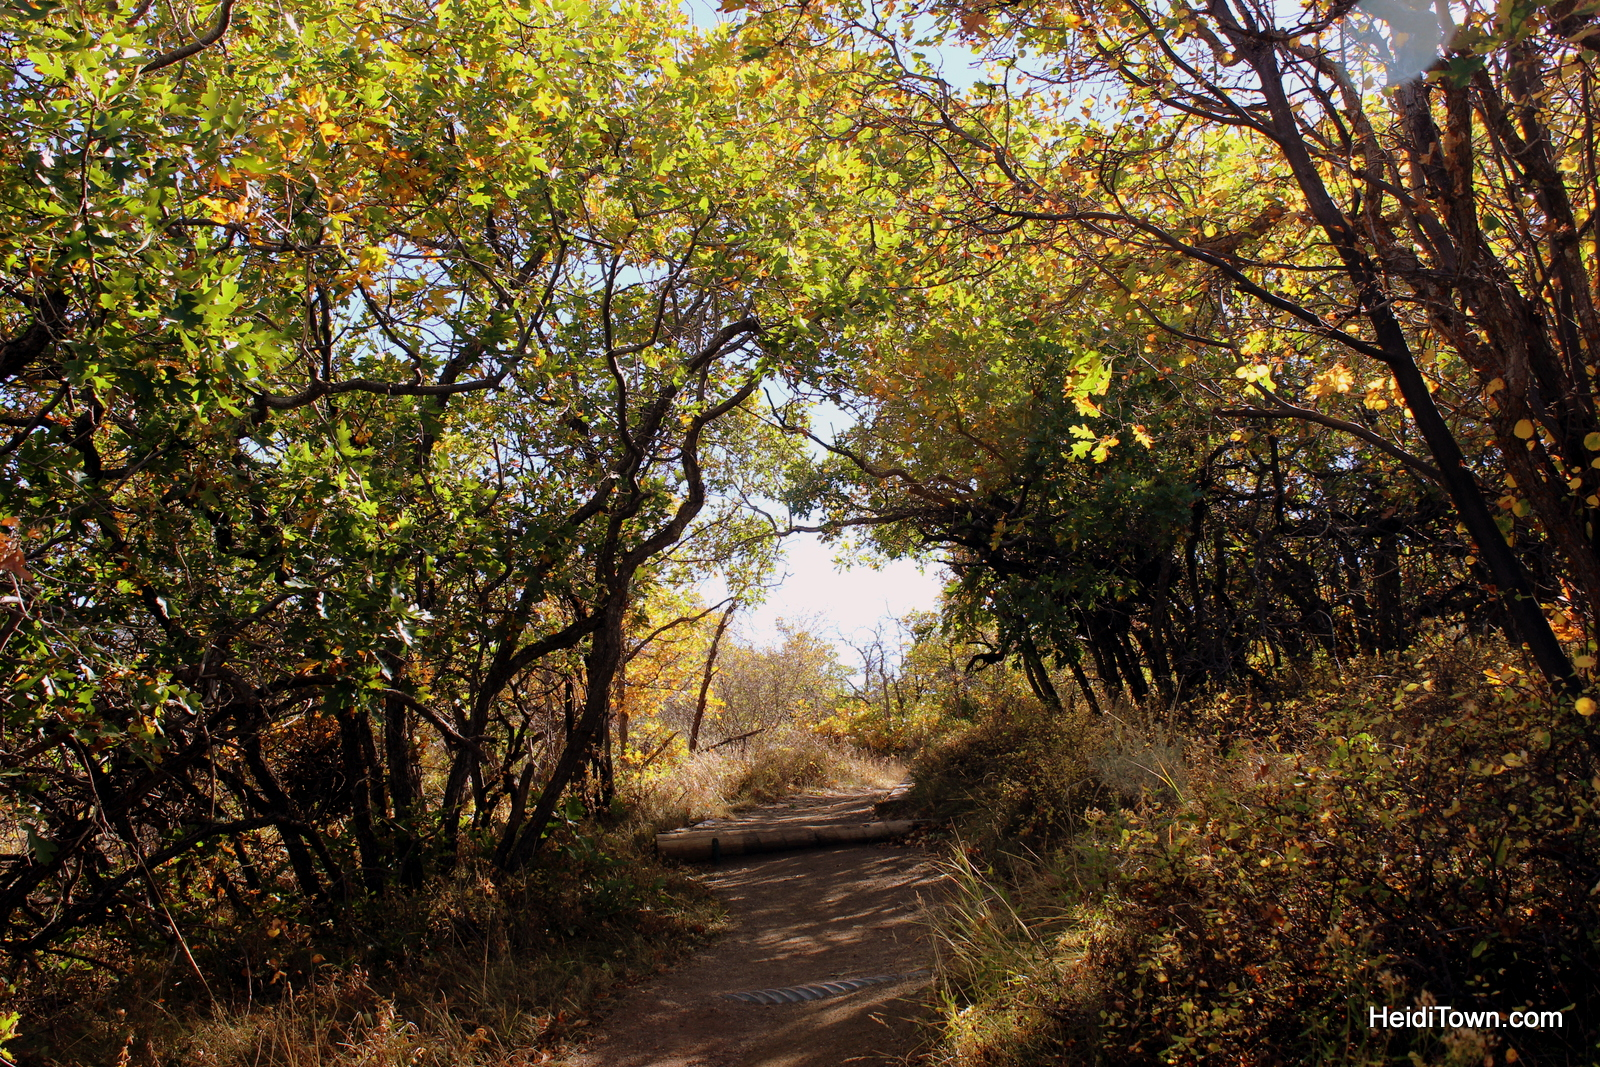 Hiking at Black Canyon of the Gunnison National Park. HeidiTown (2)